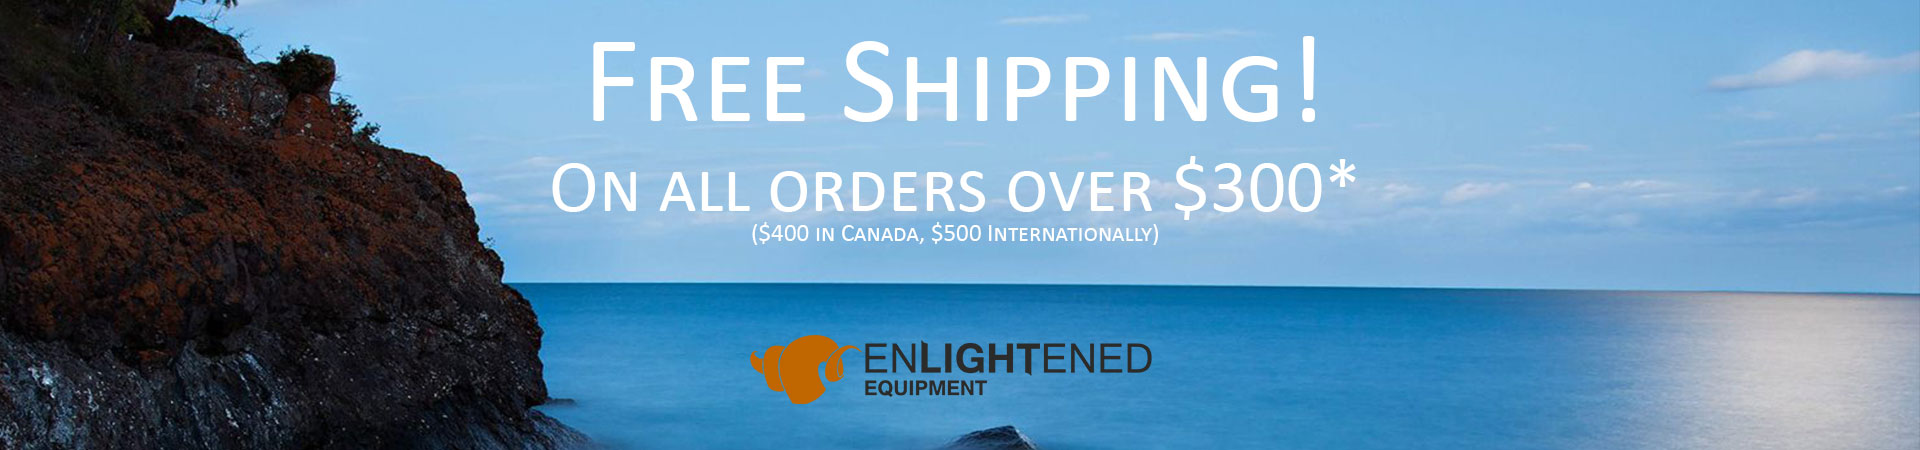 Free Shipping On EE Orders over $300 ($400 Canada, $500 International)